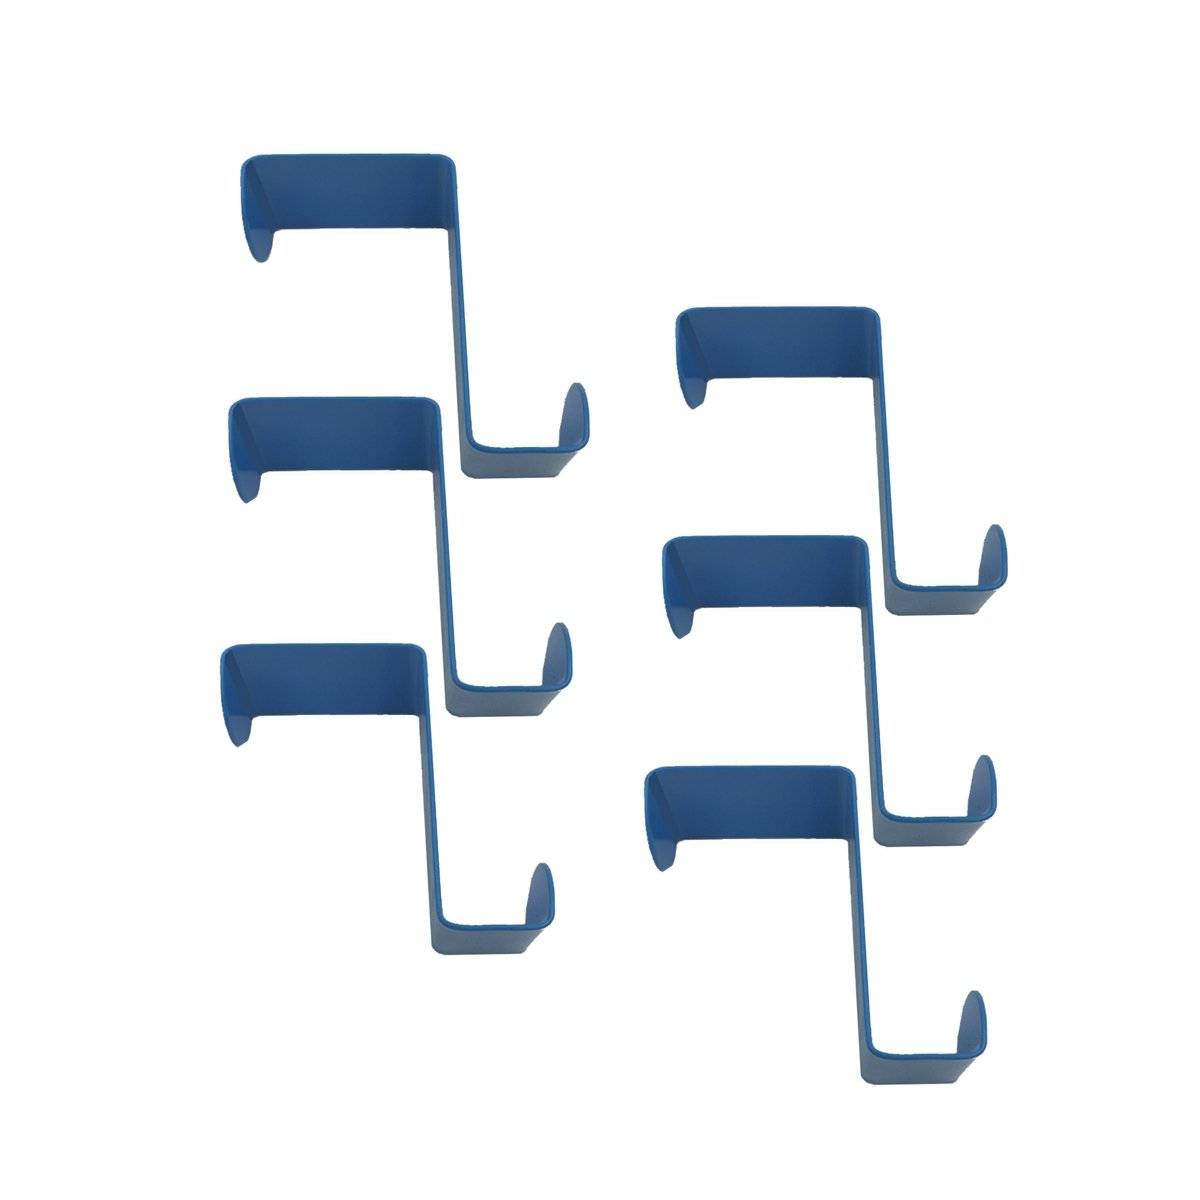 Doitb 6pcs Over Door Hanger Stainless Steel Hanging Hooks for Bathroom Bedroom Office Cabinet Draw Clothes Kitchenware Pots Utensils anging Hooks Hangers for Bathroom Bedroom Office and Kitchen Blue